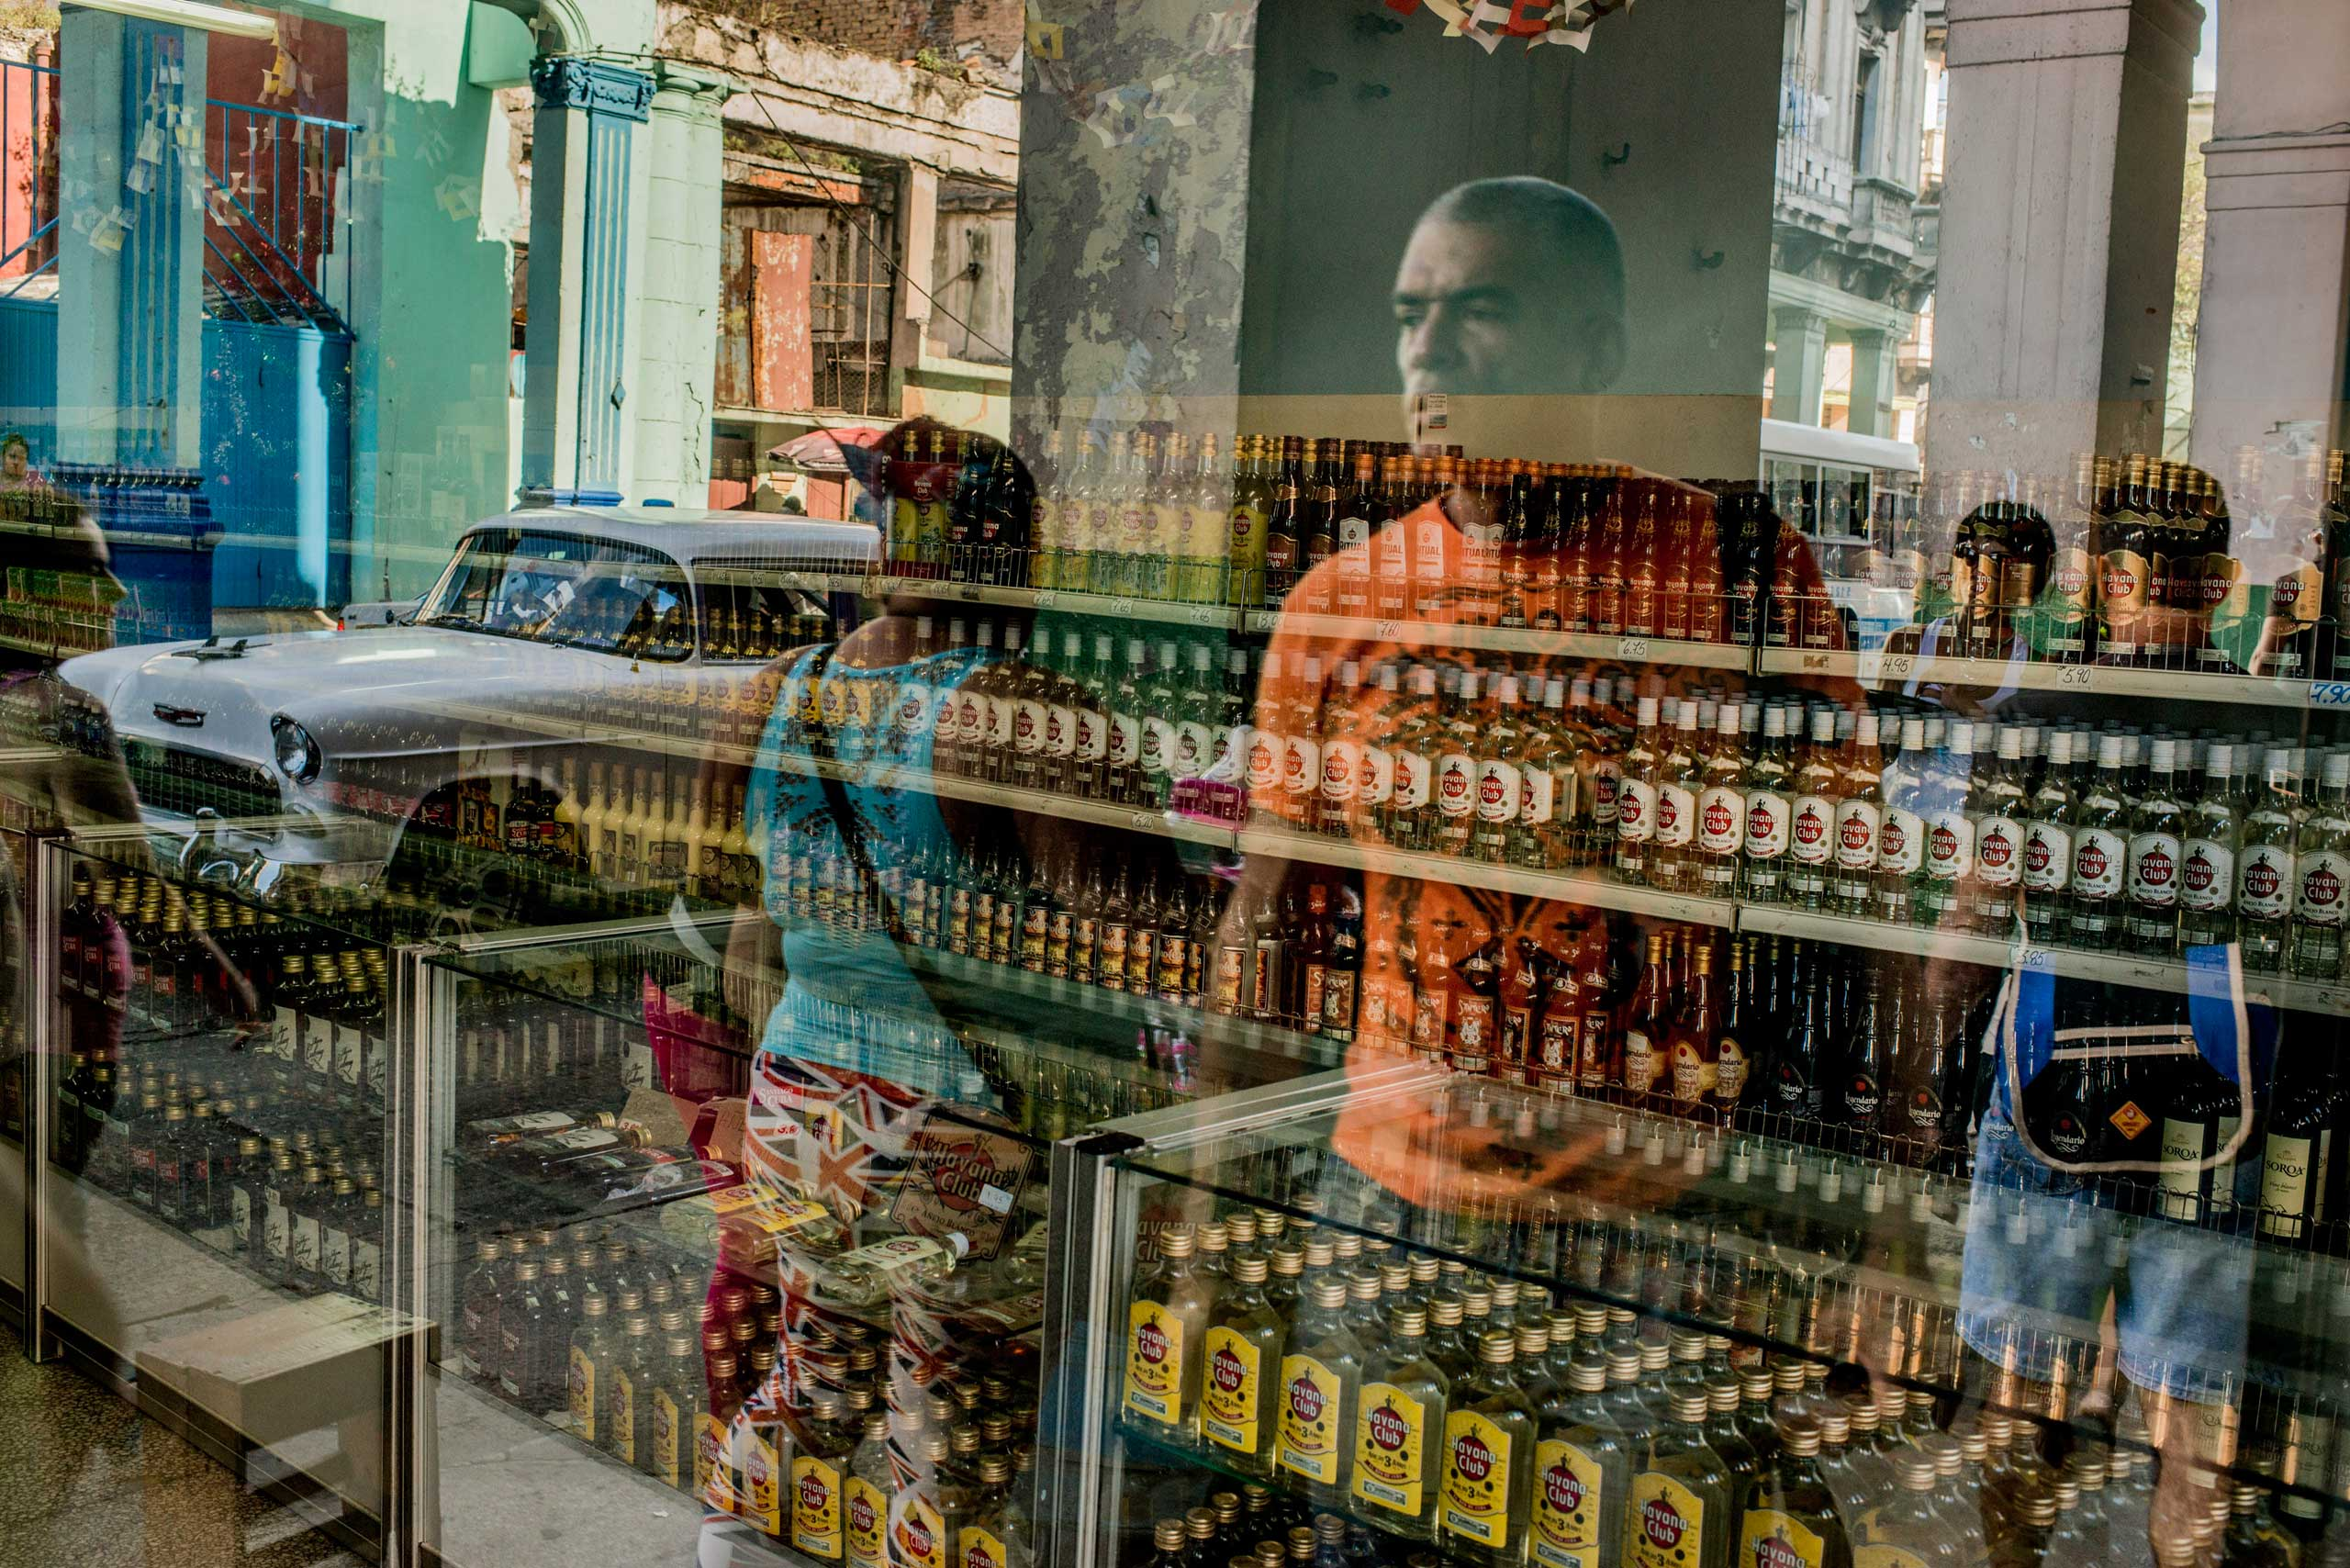 The New York Times: Cuba's Economic Fortunes May be Slow to TurnPeople outside a shop selling rum are reflected in the windows, in Havana, Dec. 22, 2014.